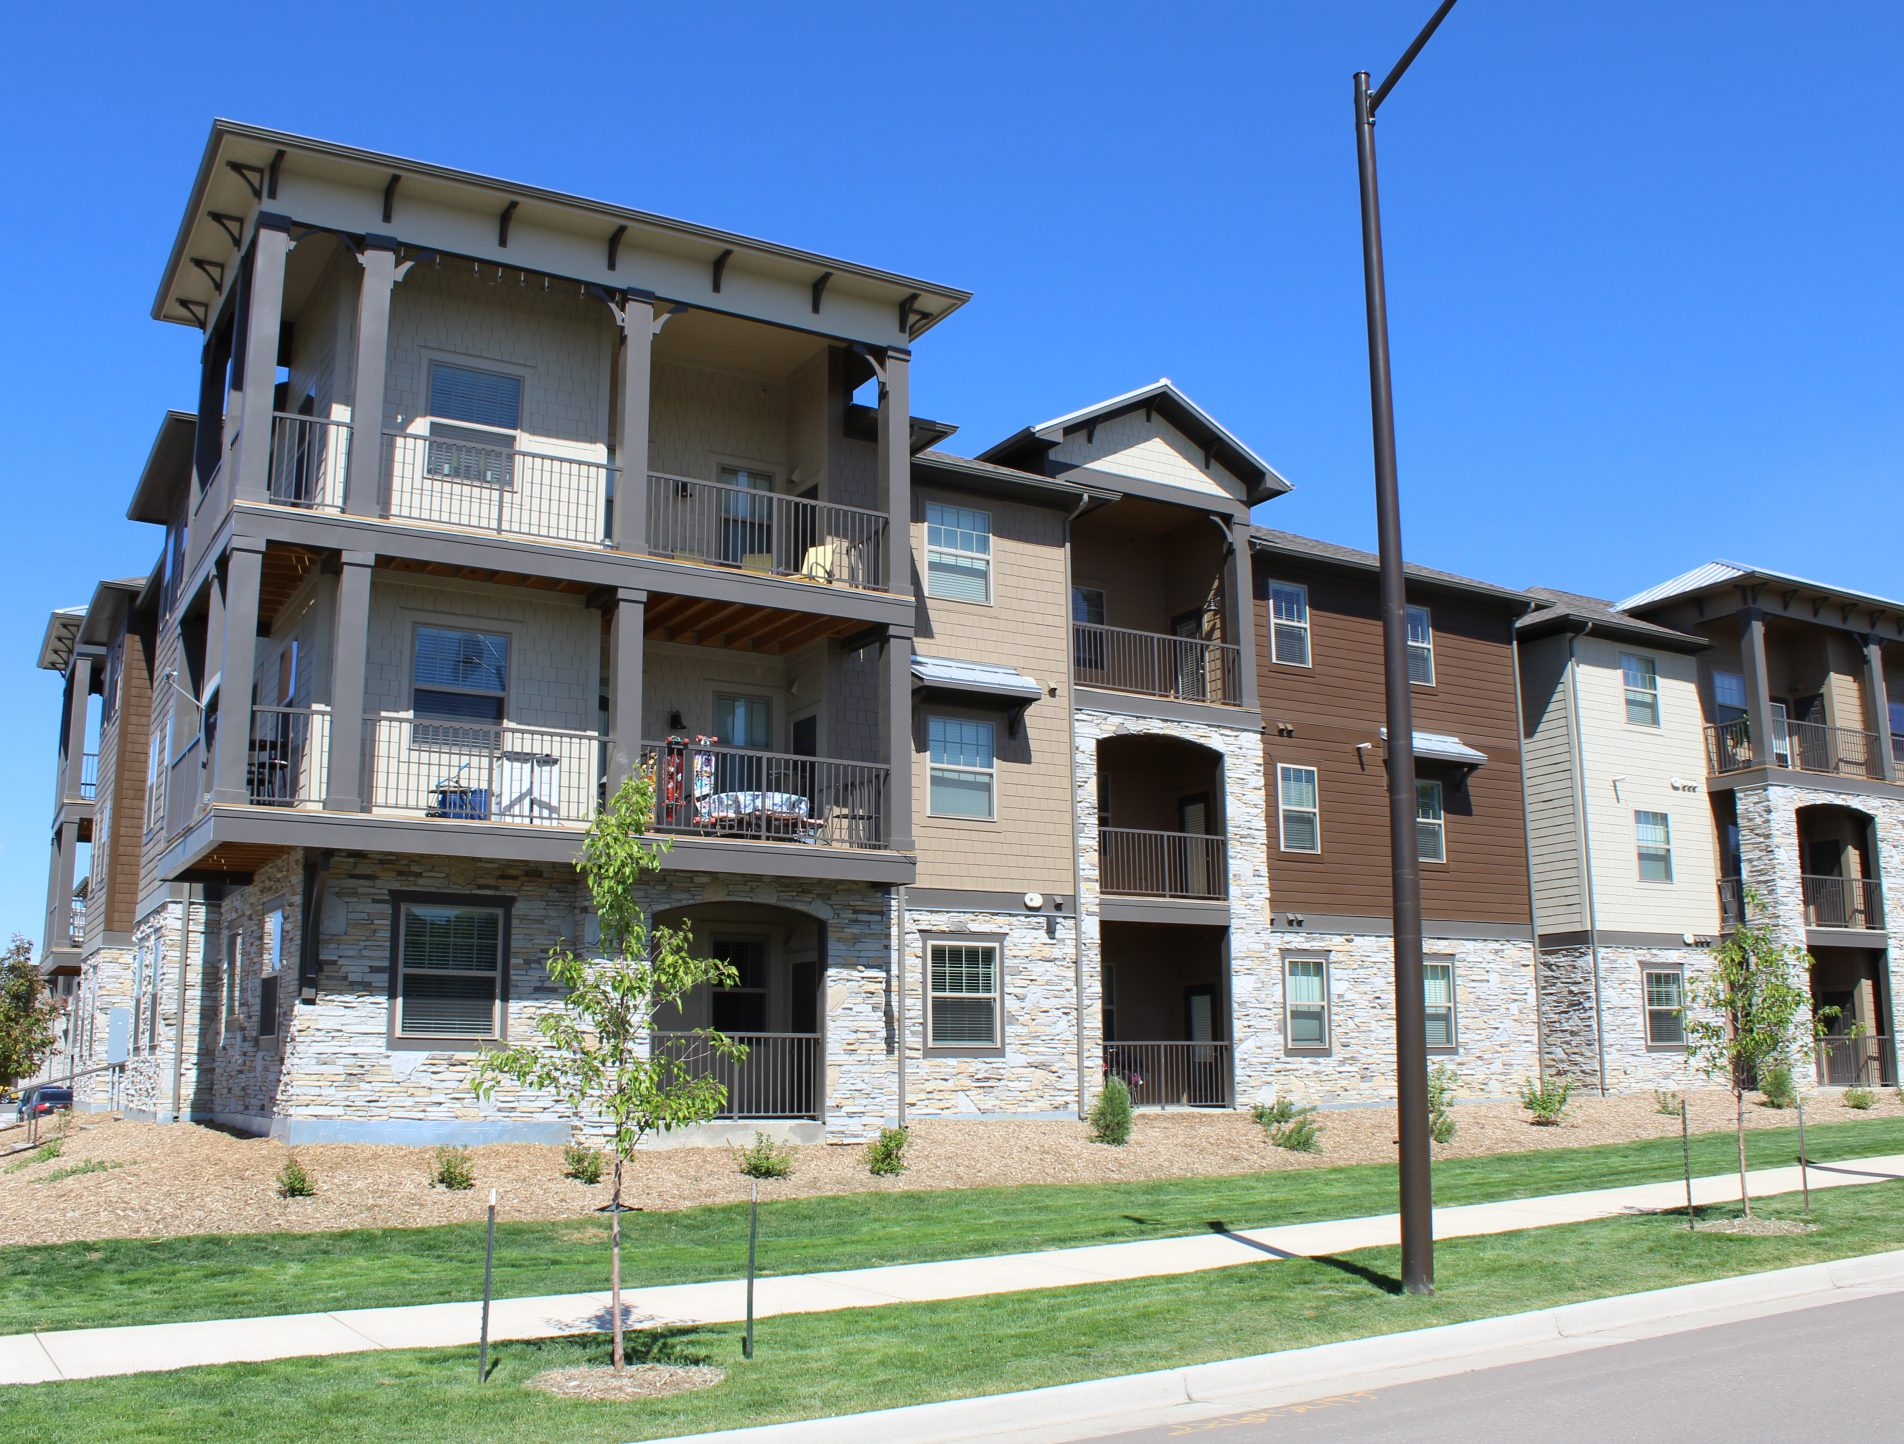 Crowne At Timberline: Stylish Apartments Near Fort Collins, Colorado